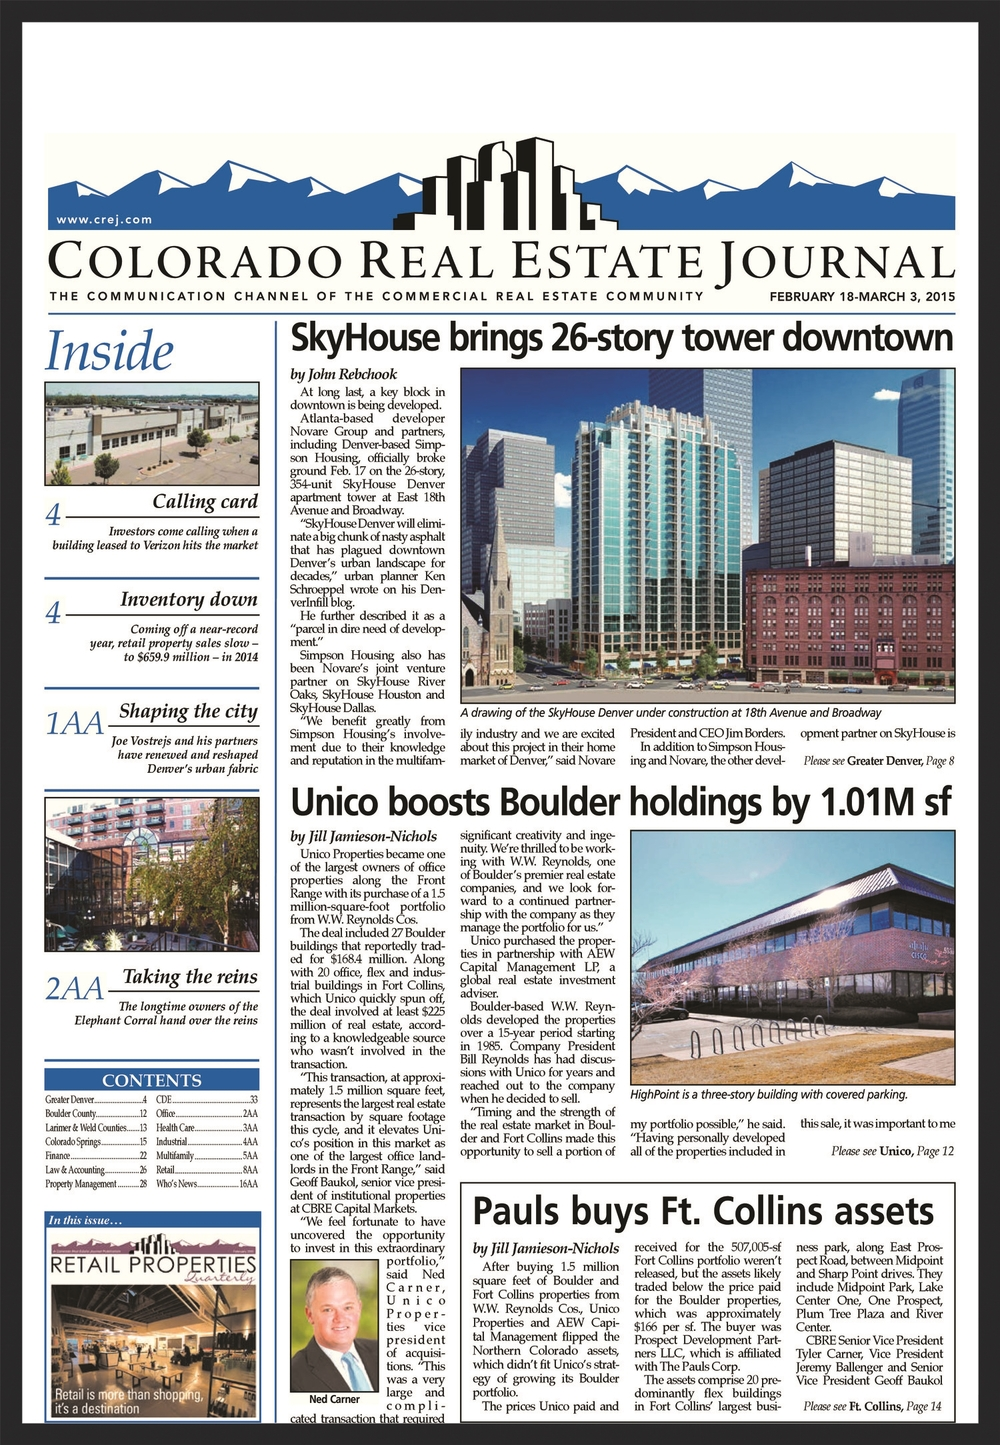 UNICO  Colorado Real Estate Journal  02.18.2015